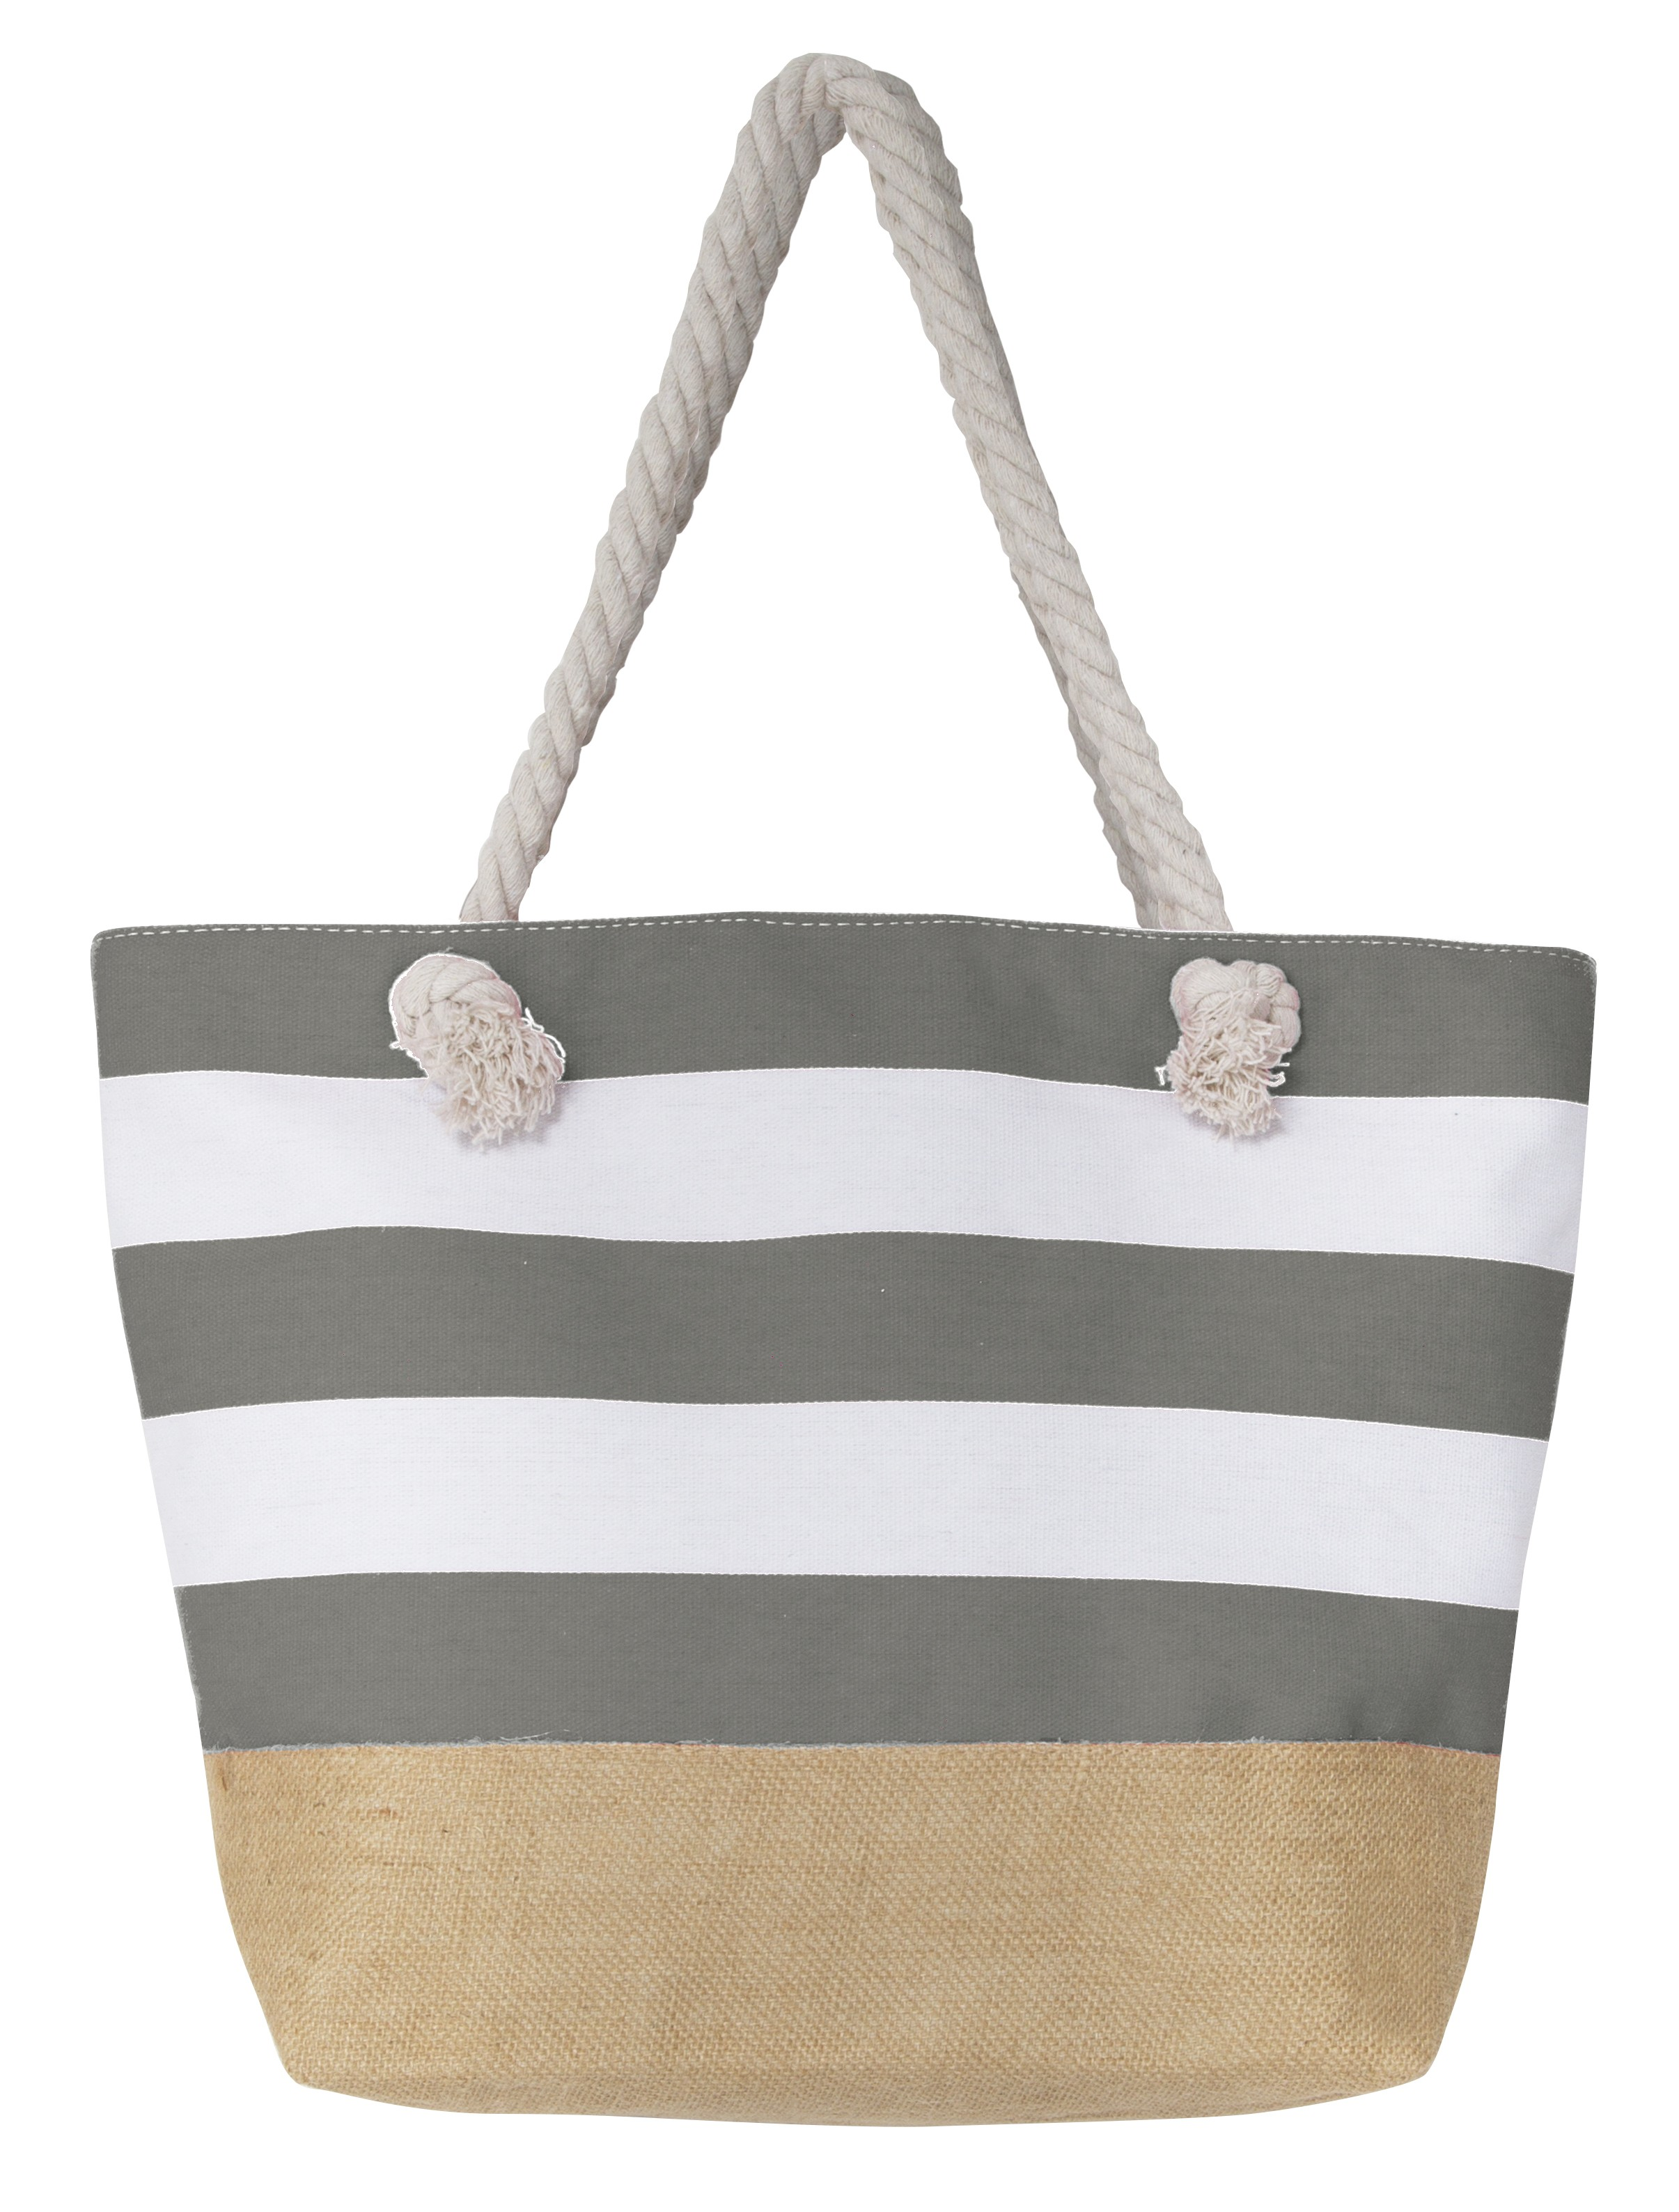 Leisureland Rope Handle Water Resistant Canvas Jute Tote Bag with Linen Bottom